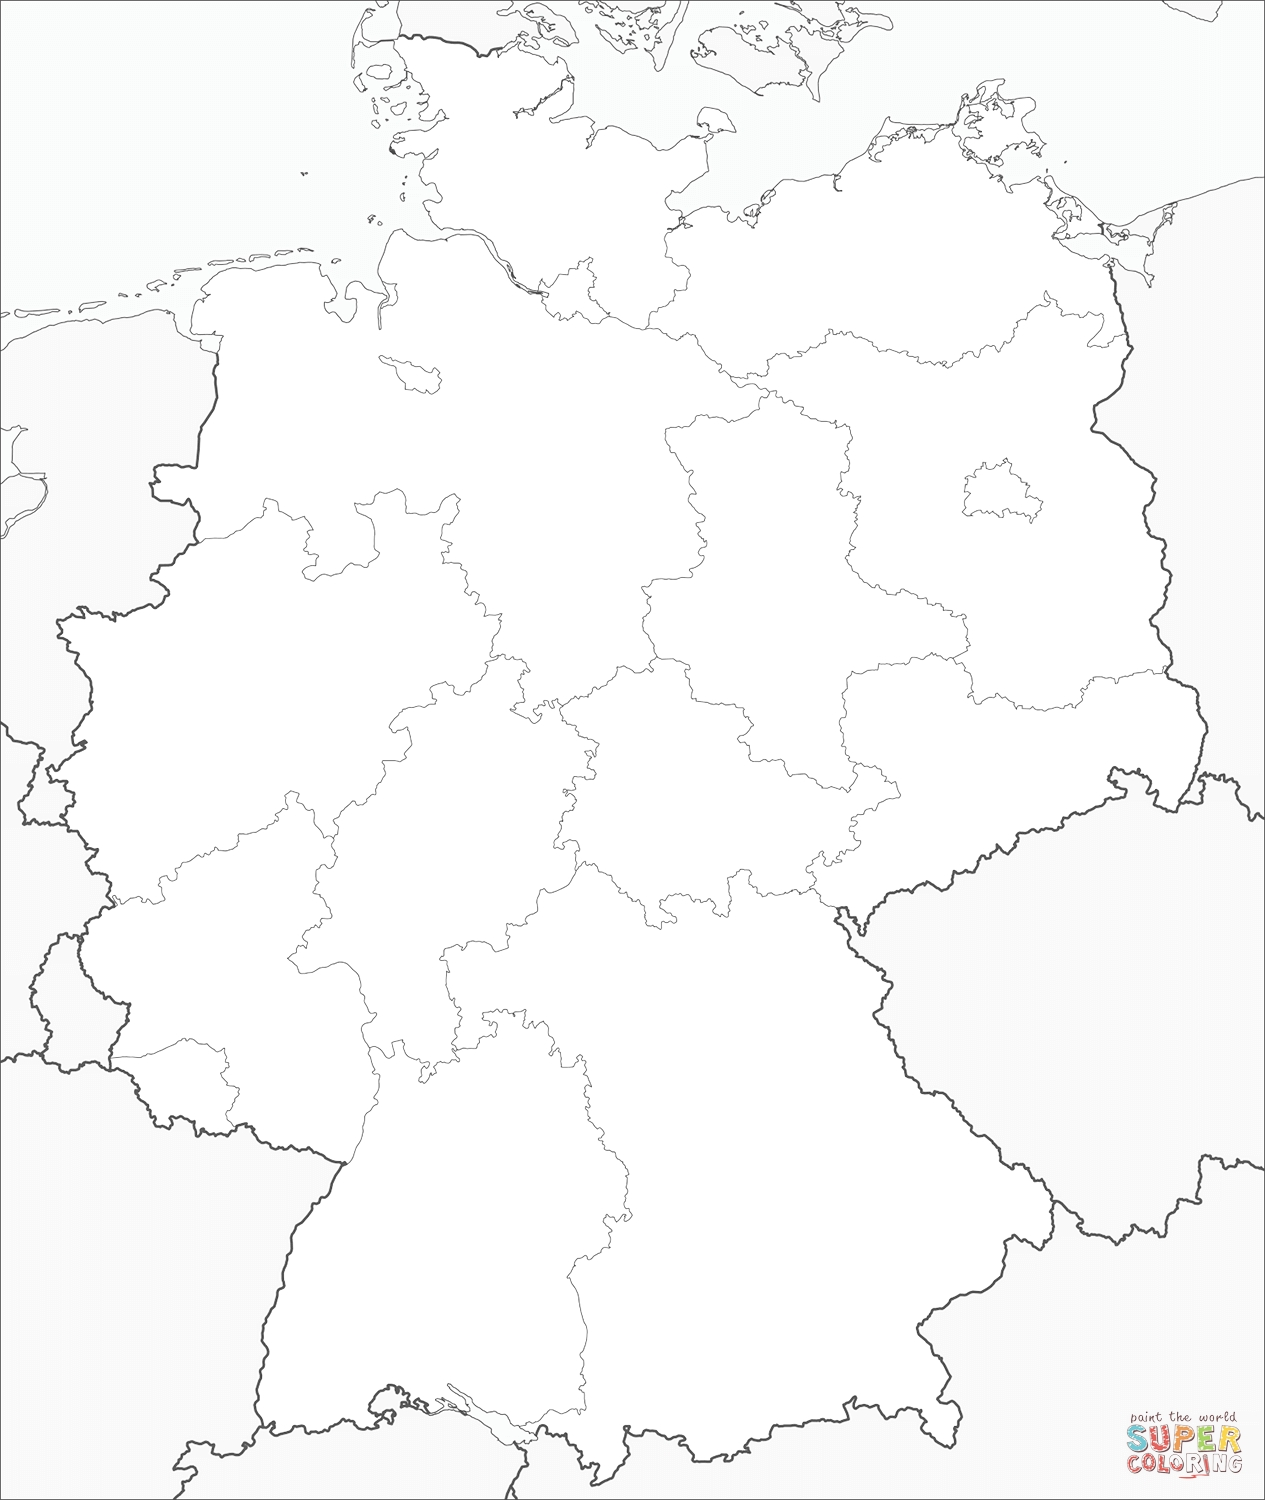 Germany Map Coloring Page   Free Printable Coloring Pages throughout Germany Map Coloring Page